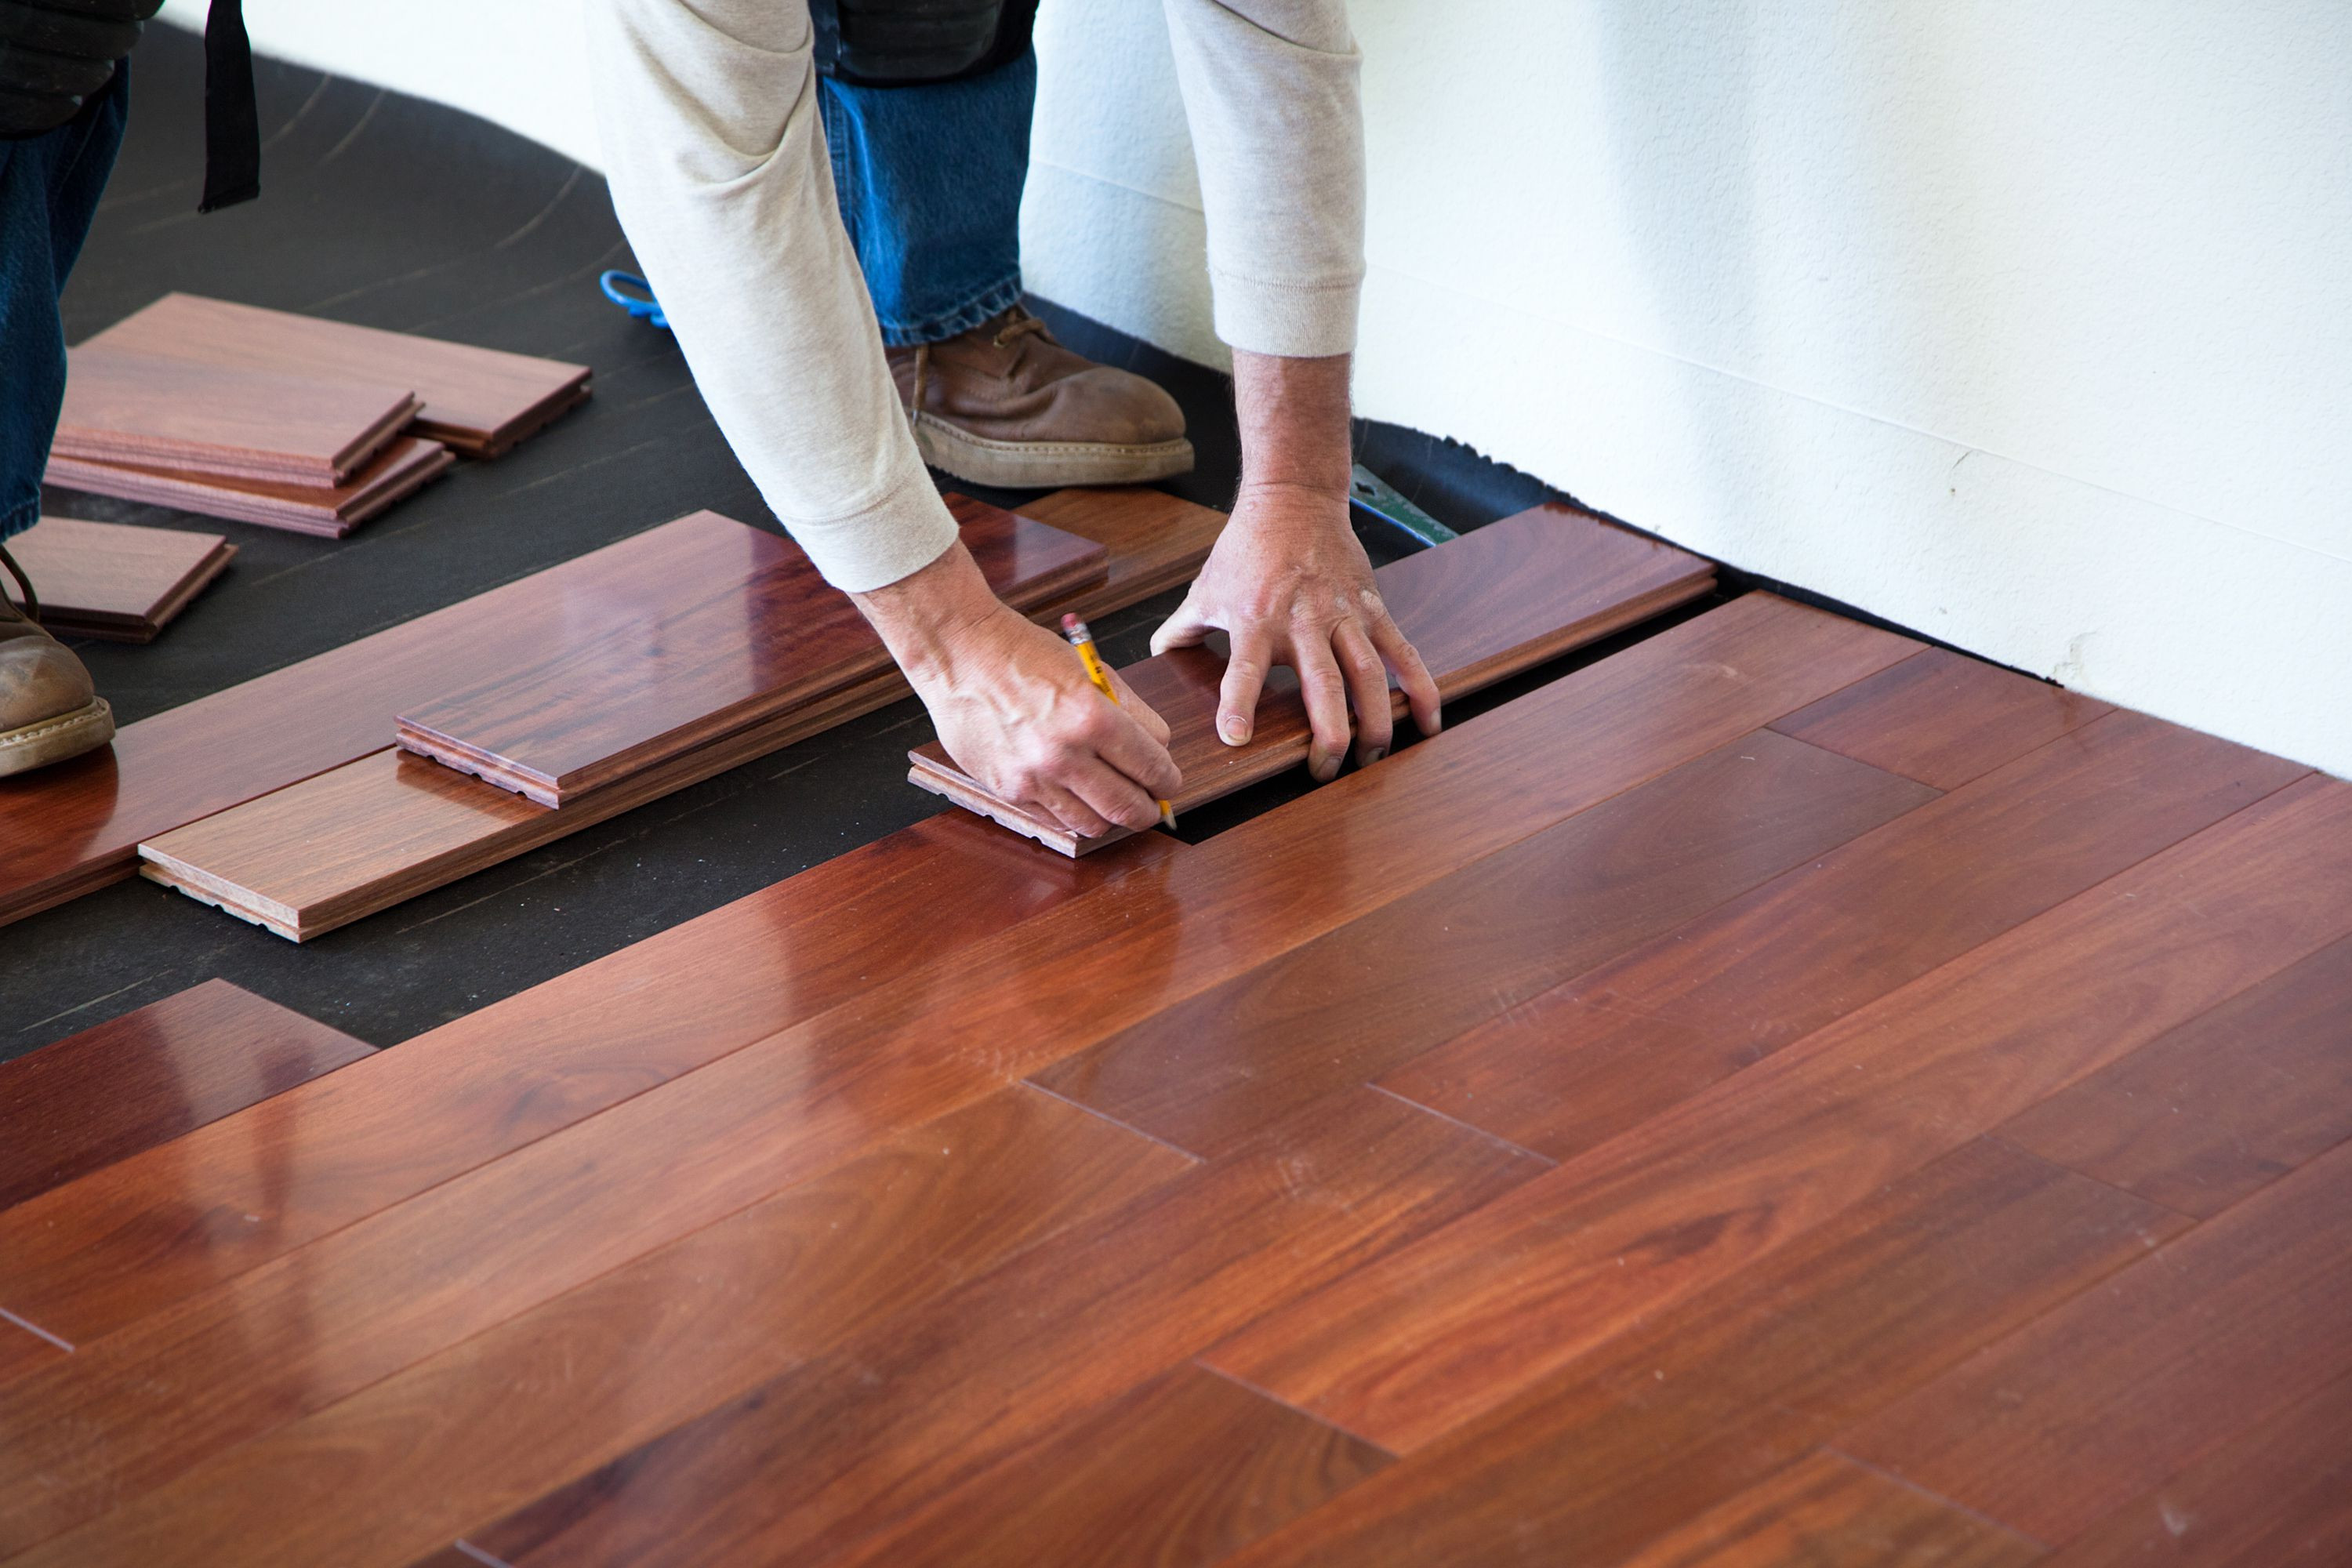 best hardwood floor for concrete slab of the subfloor is the foundation of a good floor regarding installing hardwood floor 170040982 582b748c5f9b58d5b17d0c58